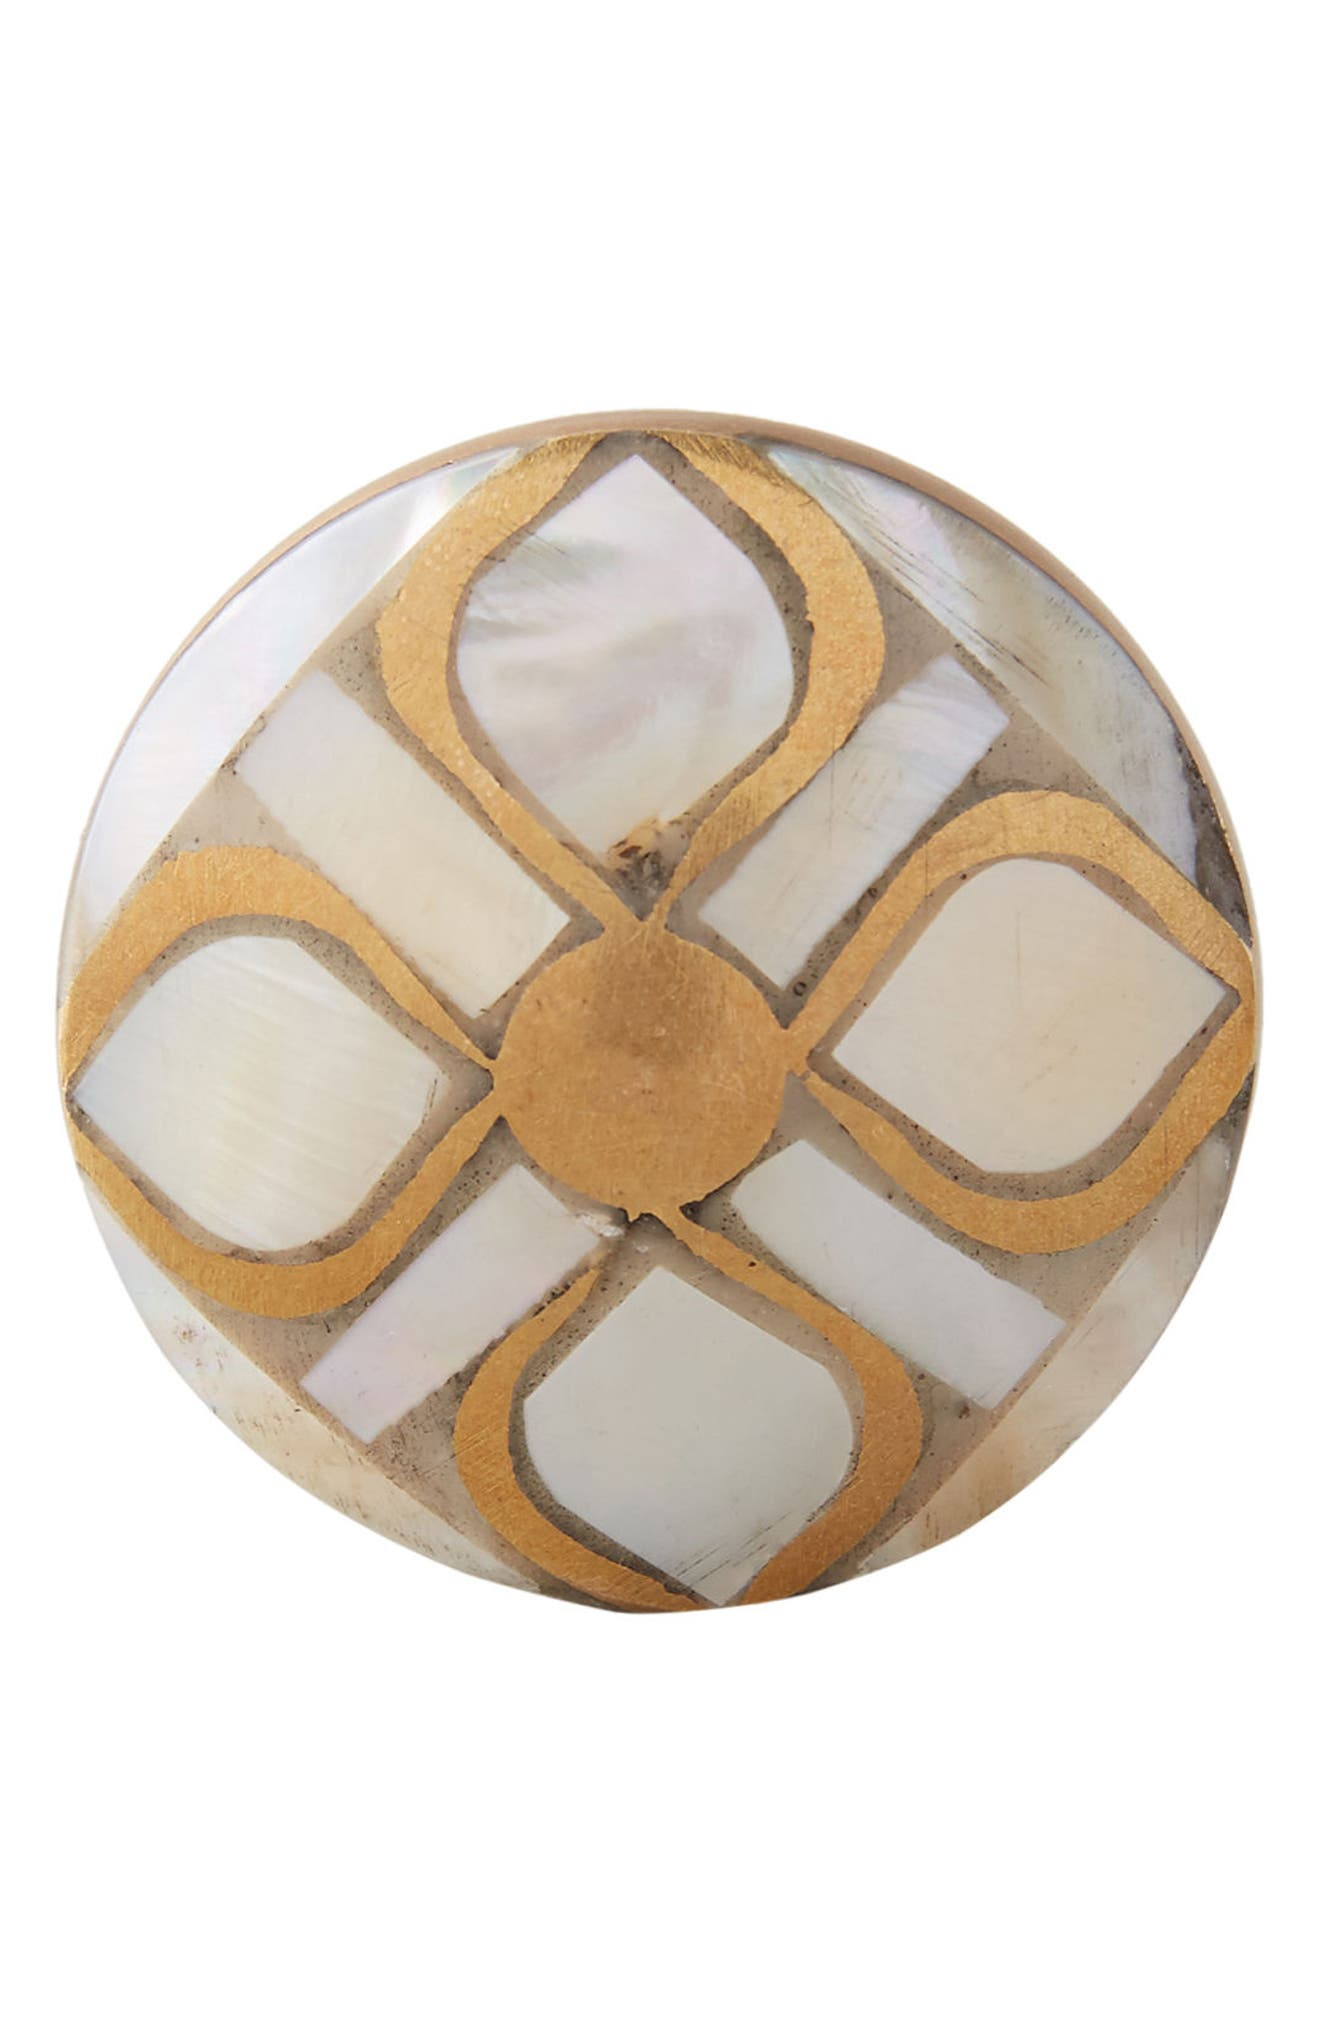 ANTHROPOLOGIE,                             Serpentine Mother of Pearl Knob,                             Alternate thumbnail 3, color,                             250